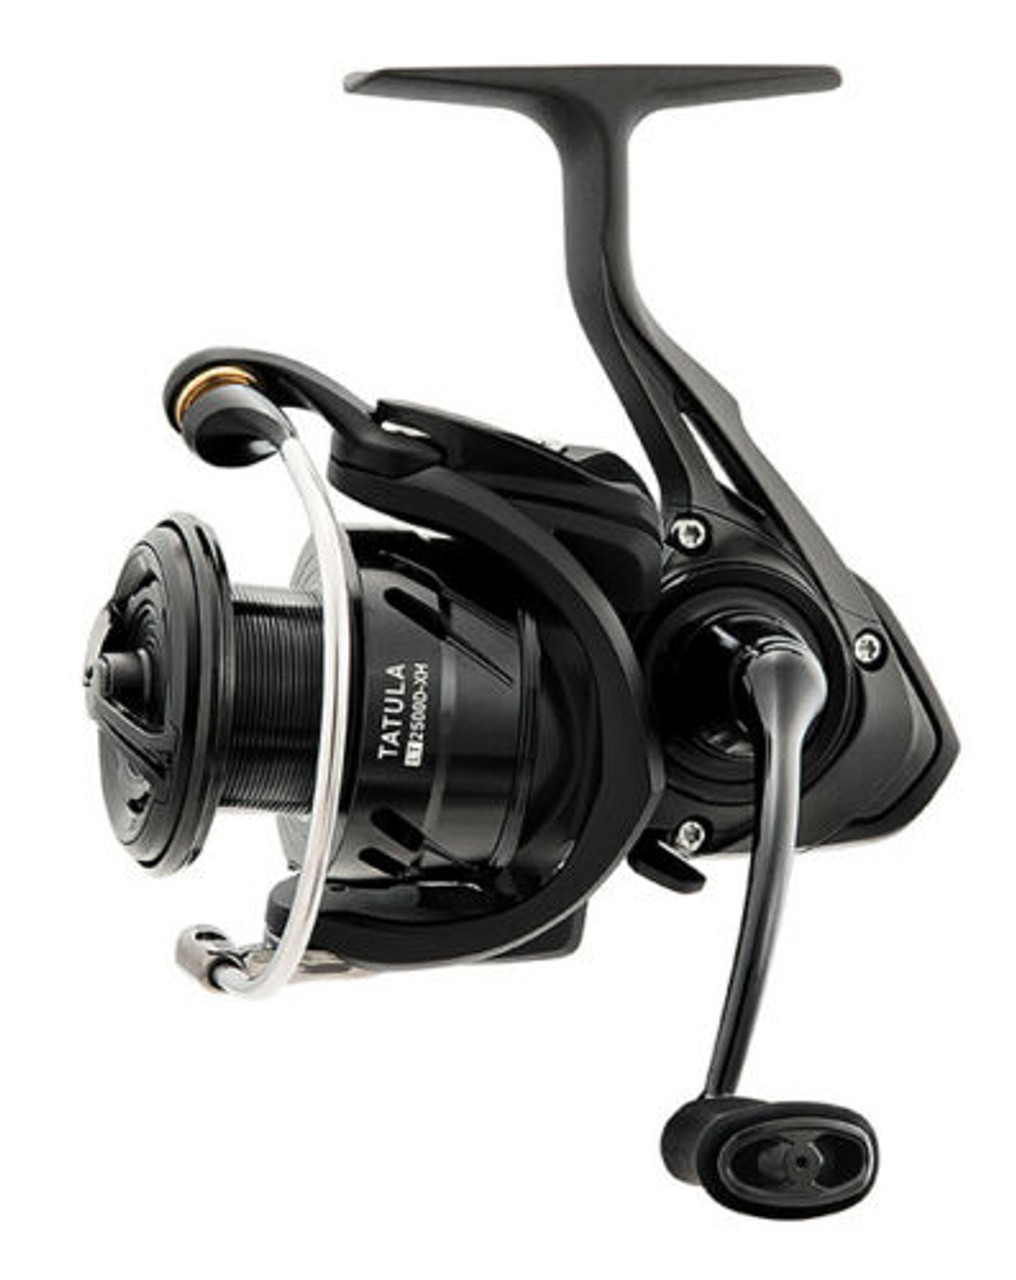 Daiwa Tatula LT Spinning Reels CHOOSE YOUR MODEL!